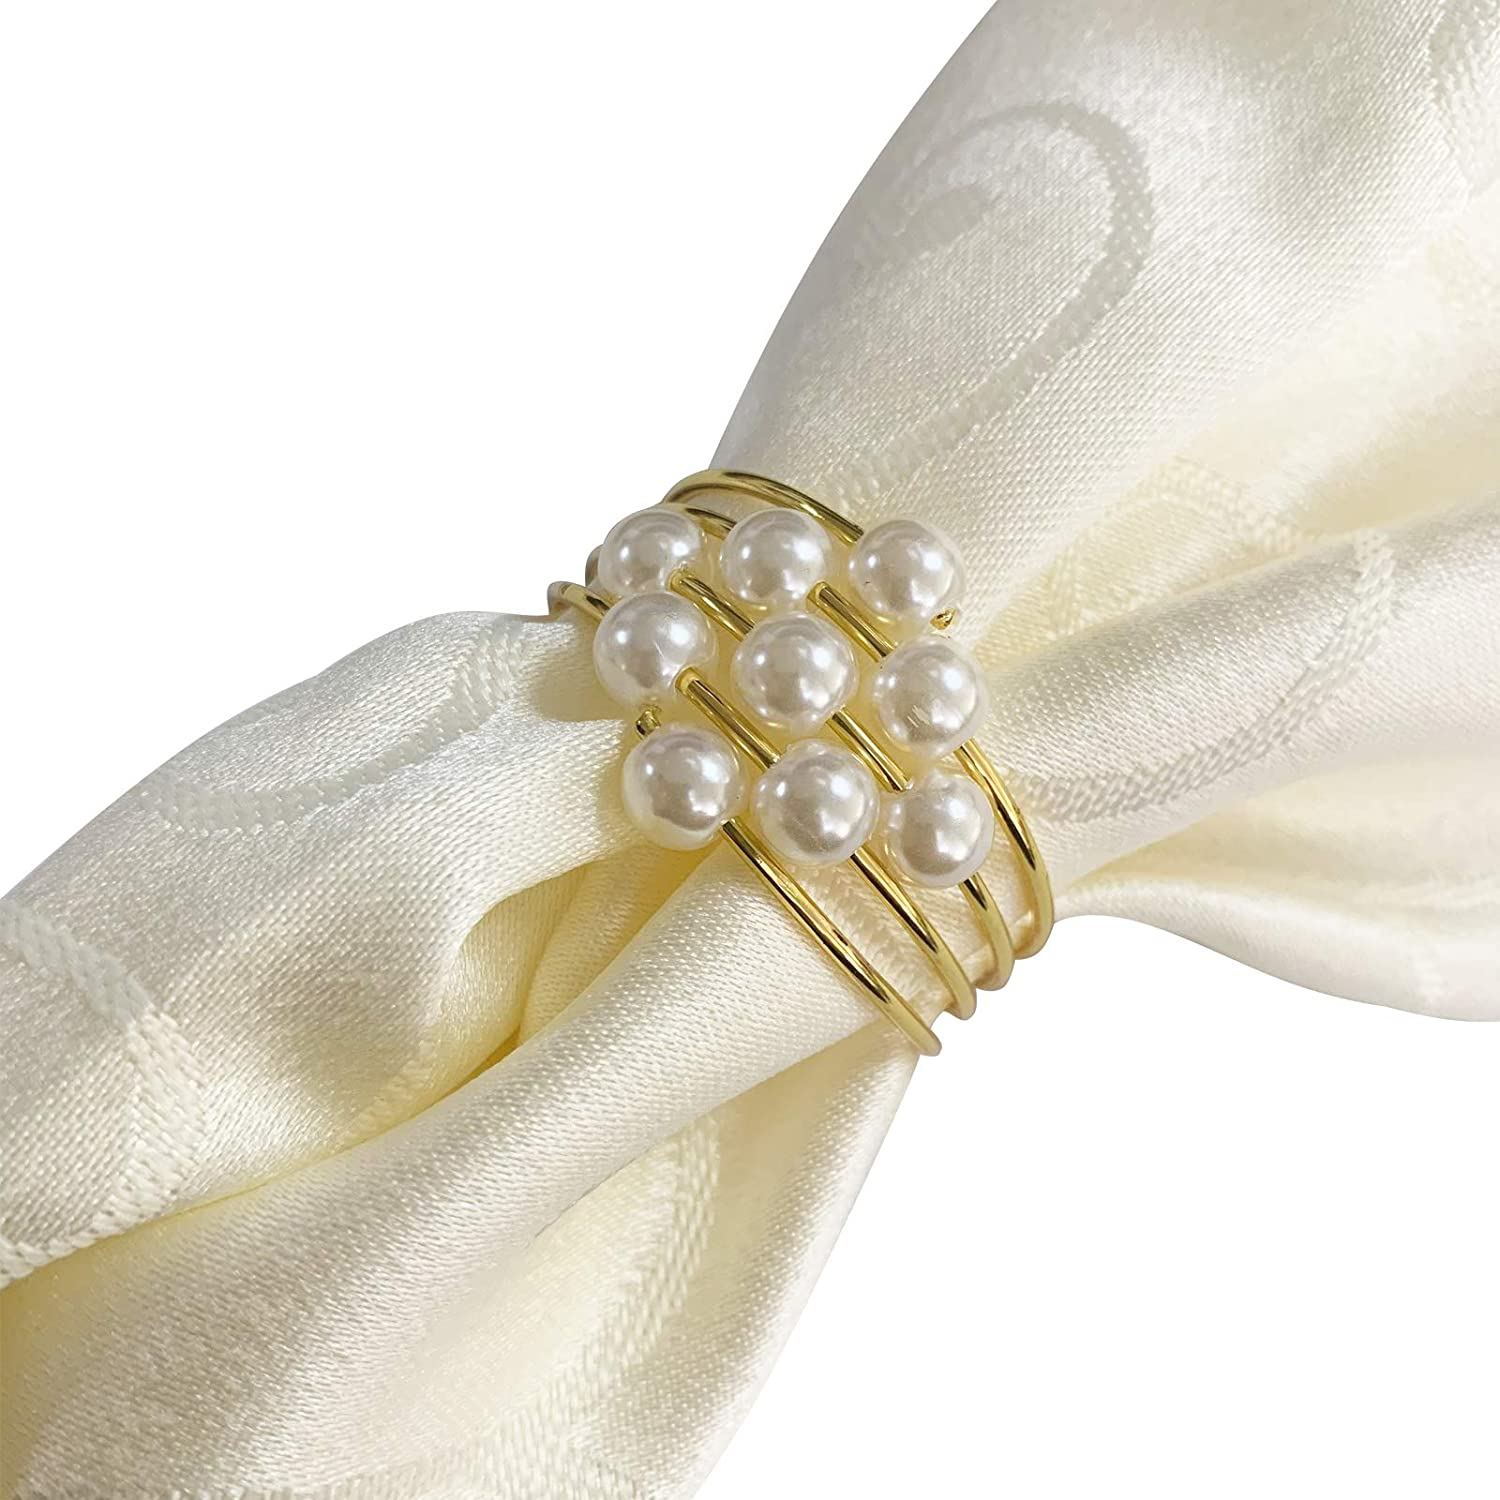 Party Dinner Table Decor Jilijia Pearls Napkin Rings Set of 12 Pearls Round Flower Napkin Buckles Rhinestone Napkin Holders for Wedding Mothers Day